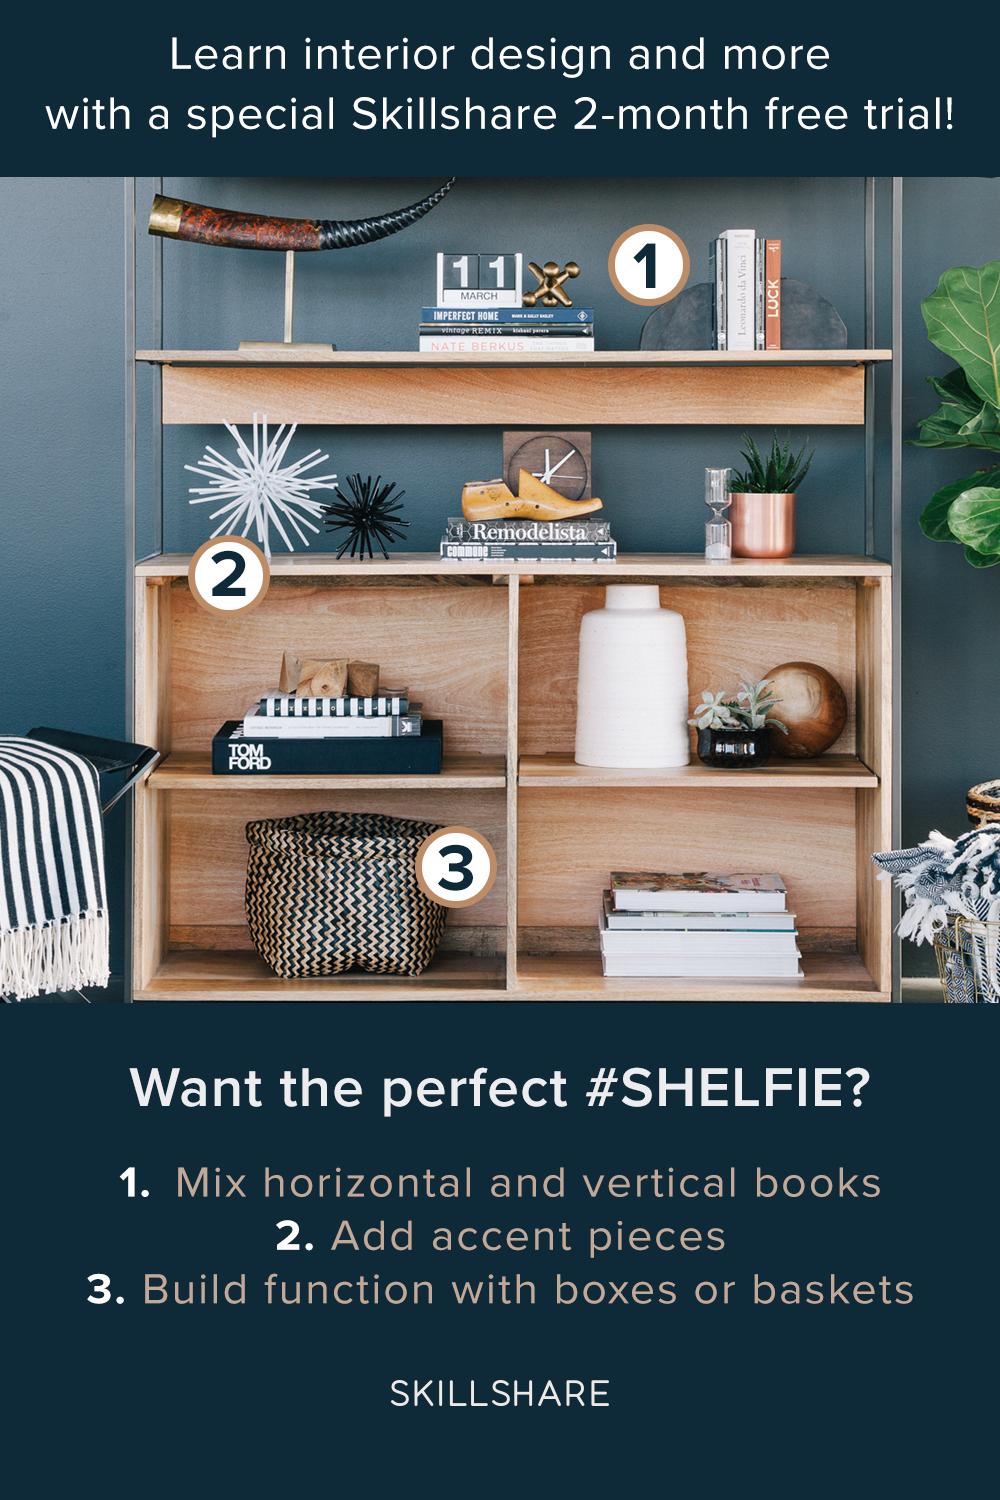 Sign Up For 2 Free Months Of Skillshare Premium And Get Access To